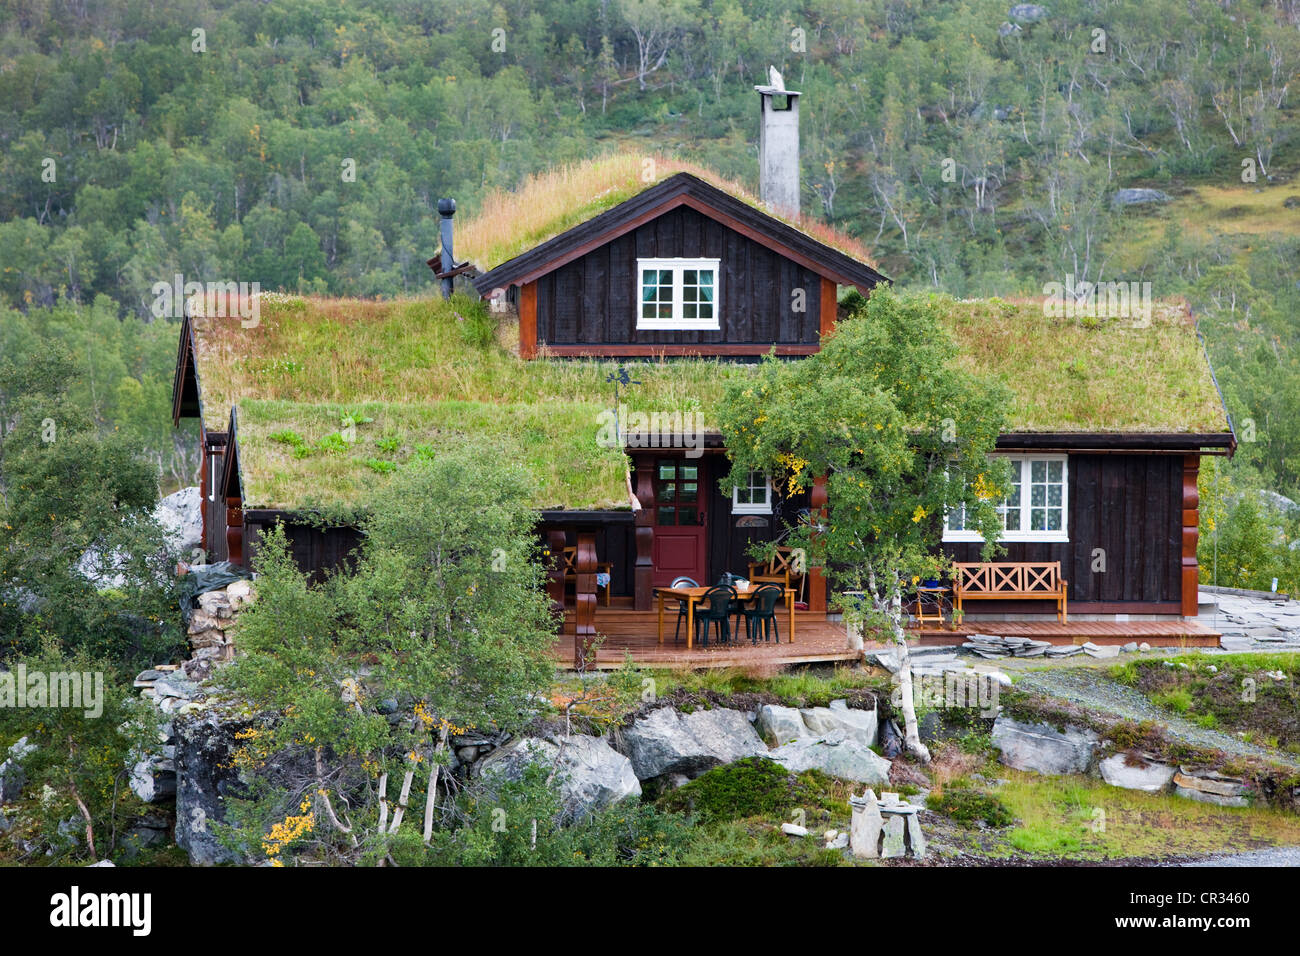 Astounding Norwegian Cottage With A Thatched Roof Norway Scandinavia Interior Design Ideas Clesiryabchikinfo